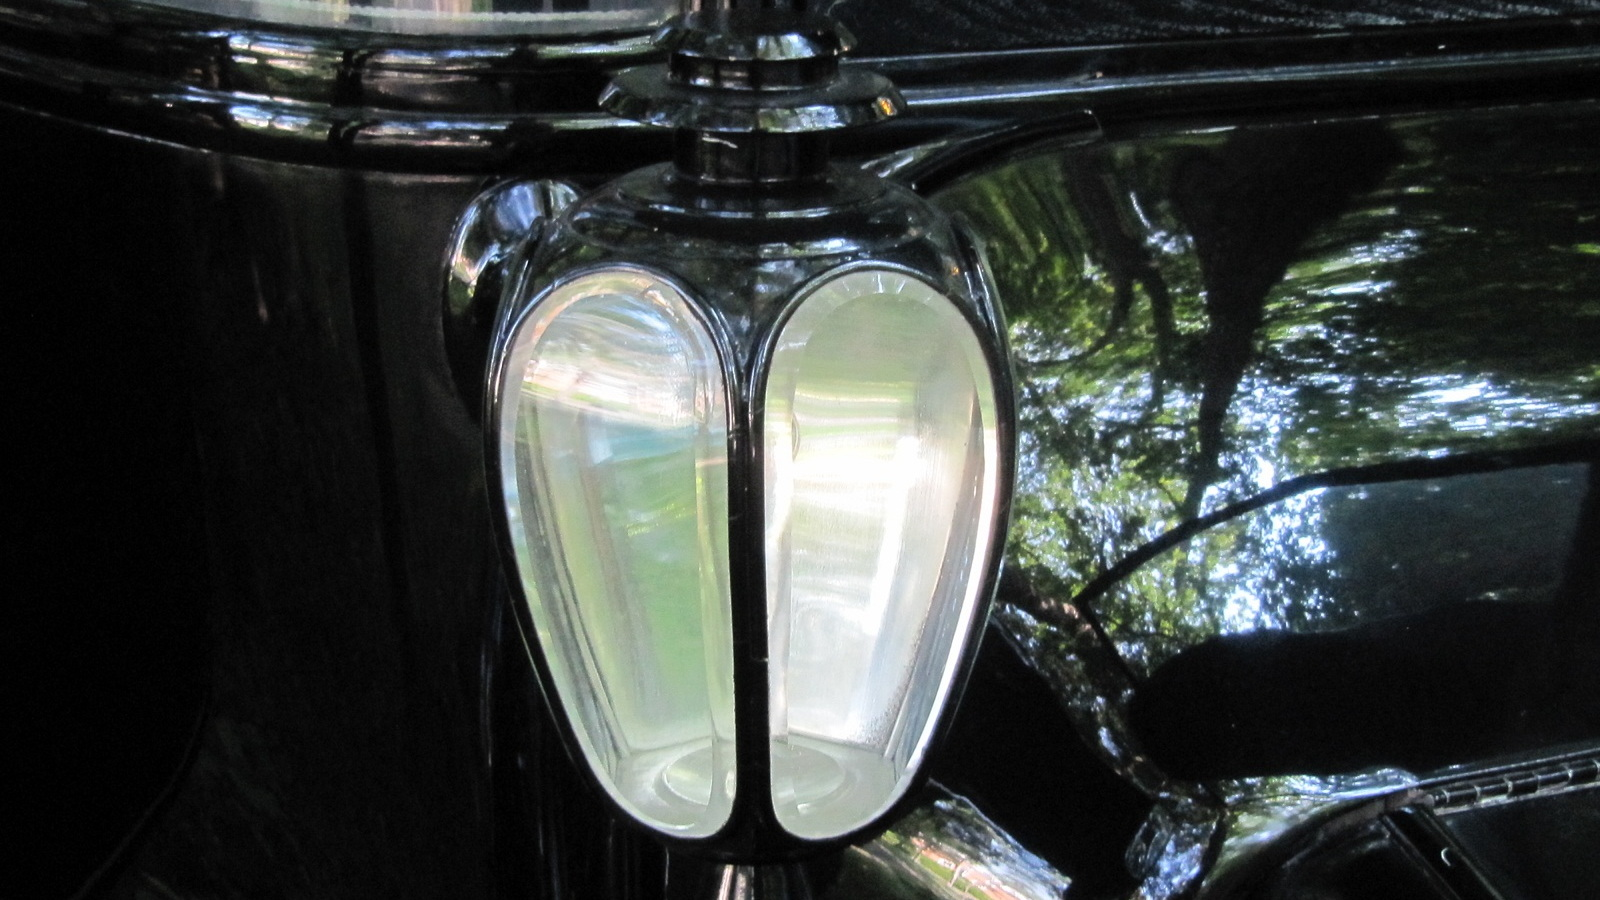 1914 Detroit Electric car, Schenectady, NY, June 2011 - carriage lamp